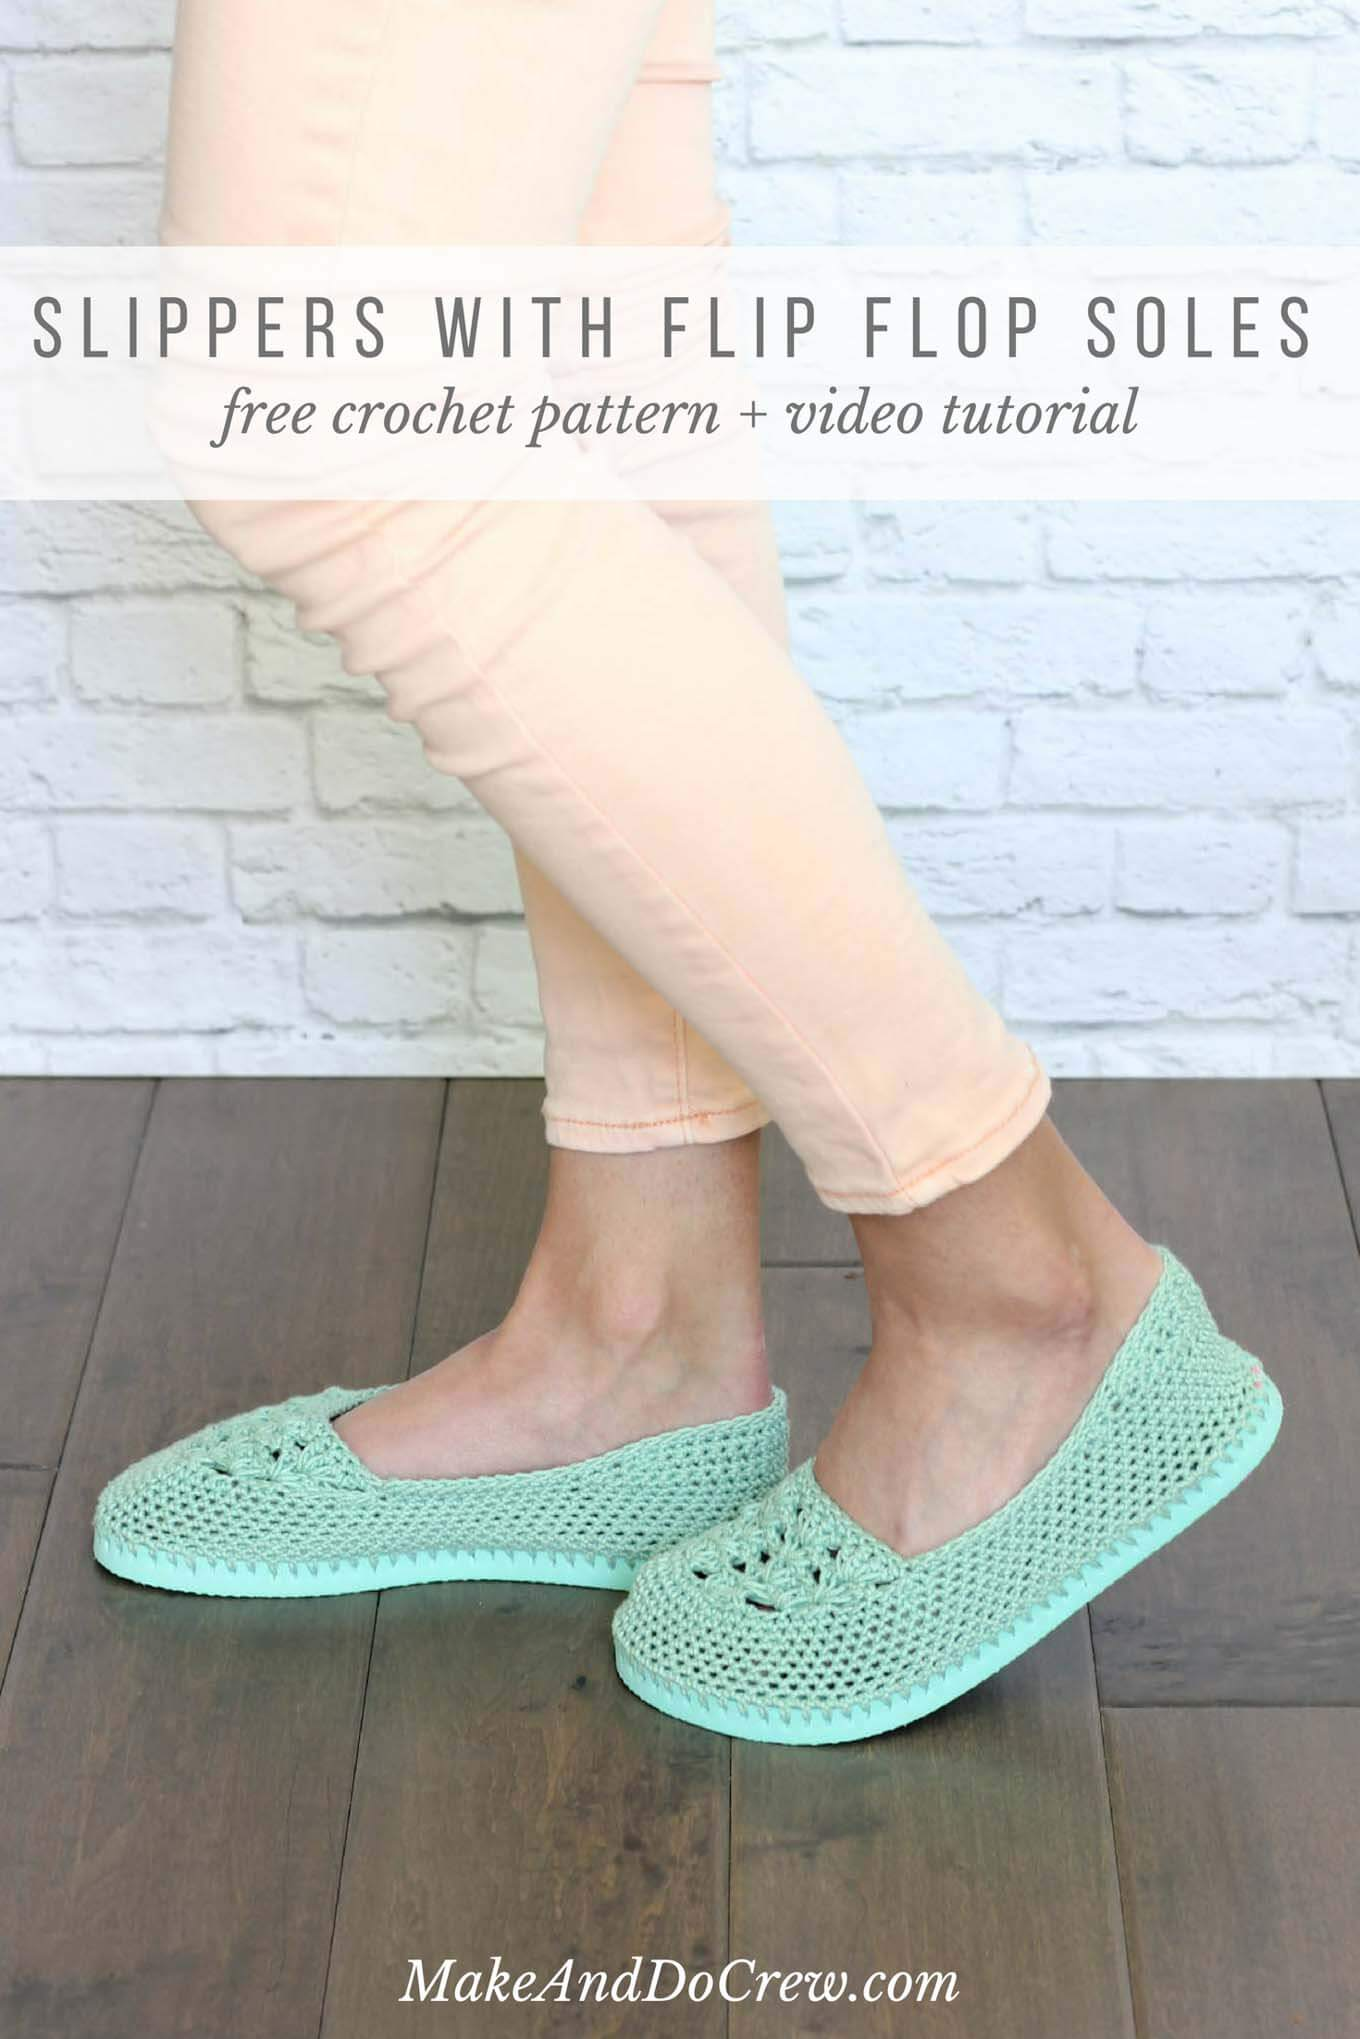 9e35365e4dcb0 Cotton yarn and a rubber sole make this free crochet slippers with flip  flop ...